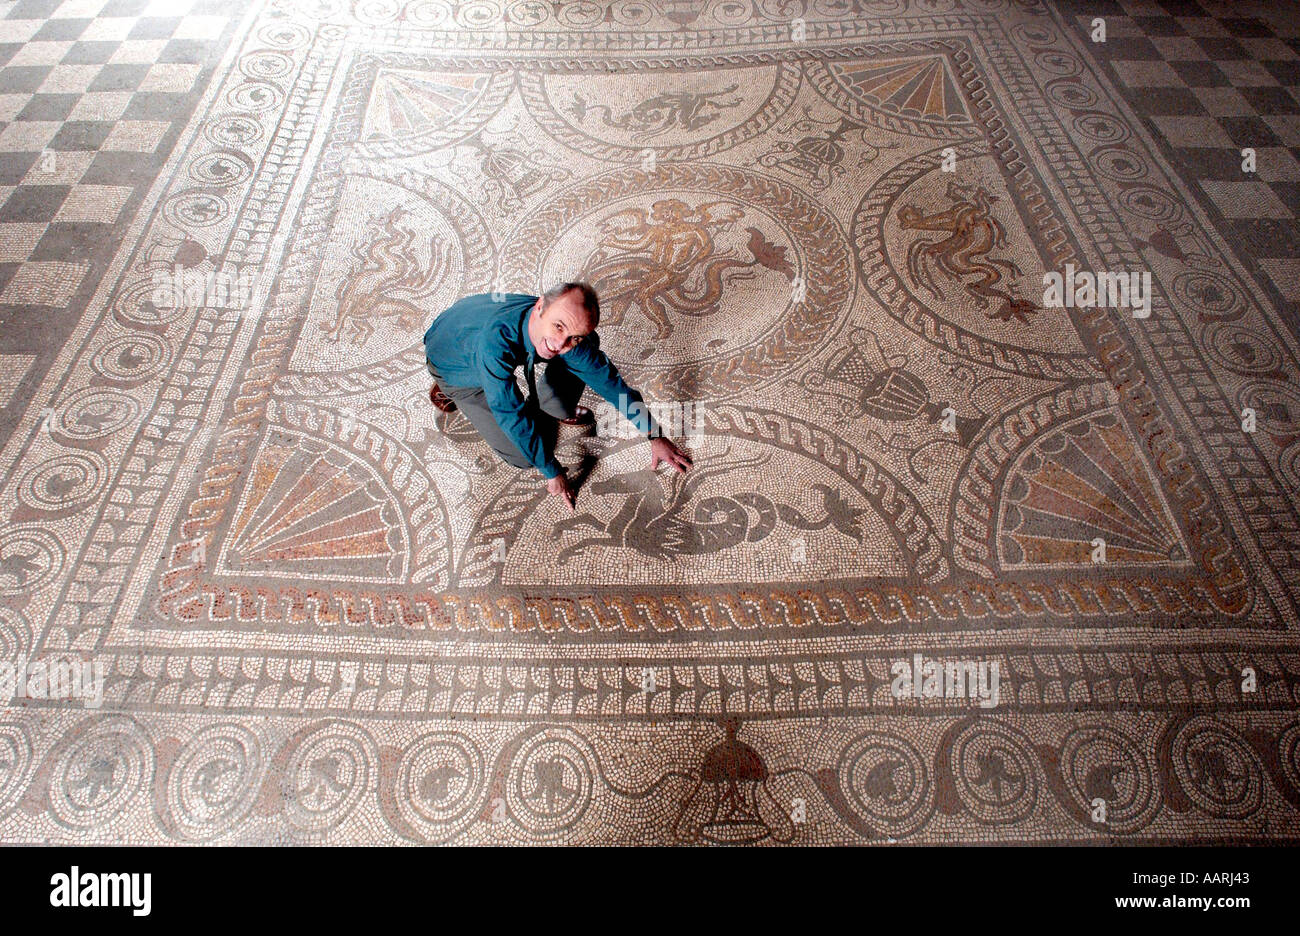 Magnificent mosaic floor in preserved Roman Villa at Fishbourne Sussex UK - Stock Image